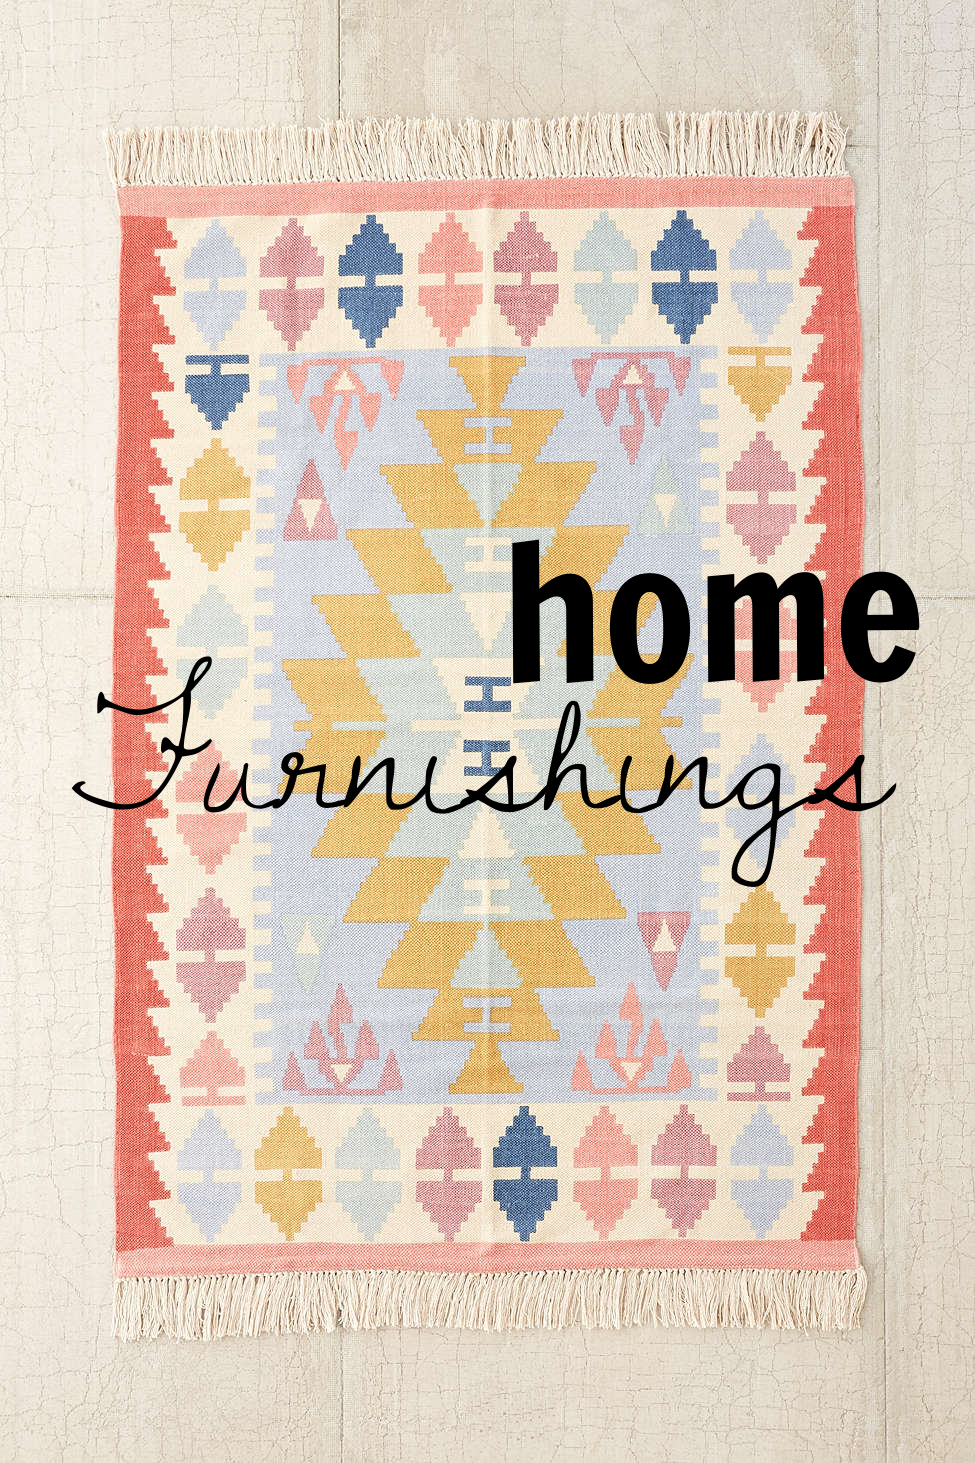 In the market for: home furnishings - The Pastiche